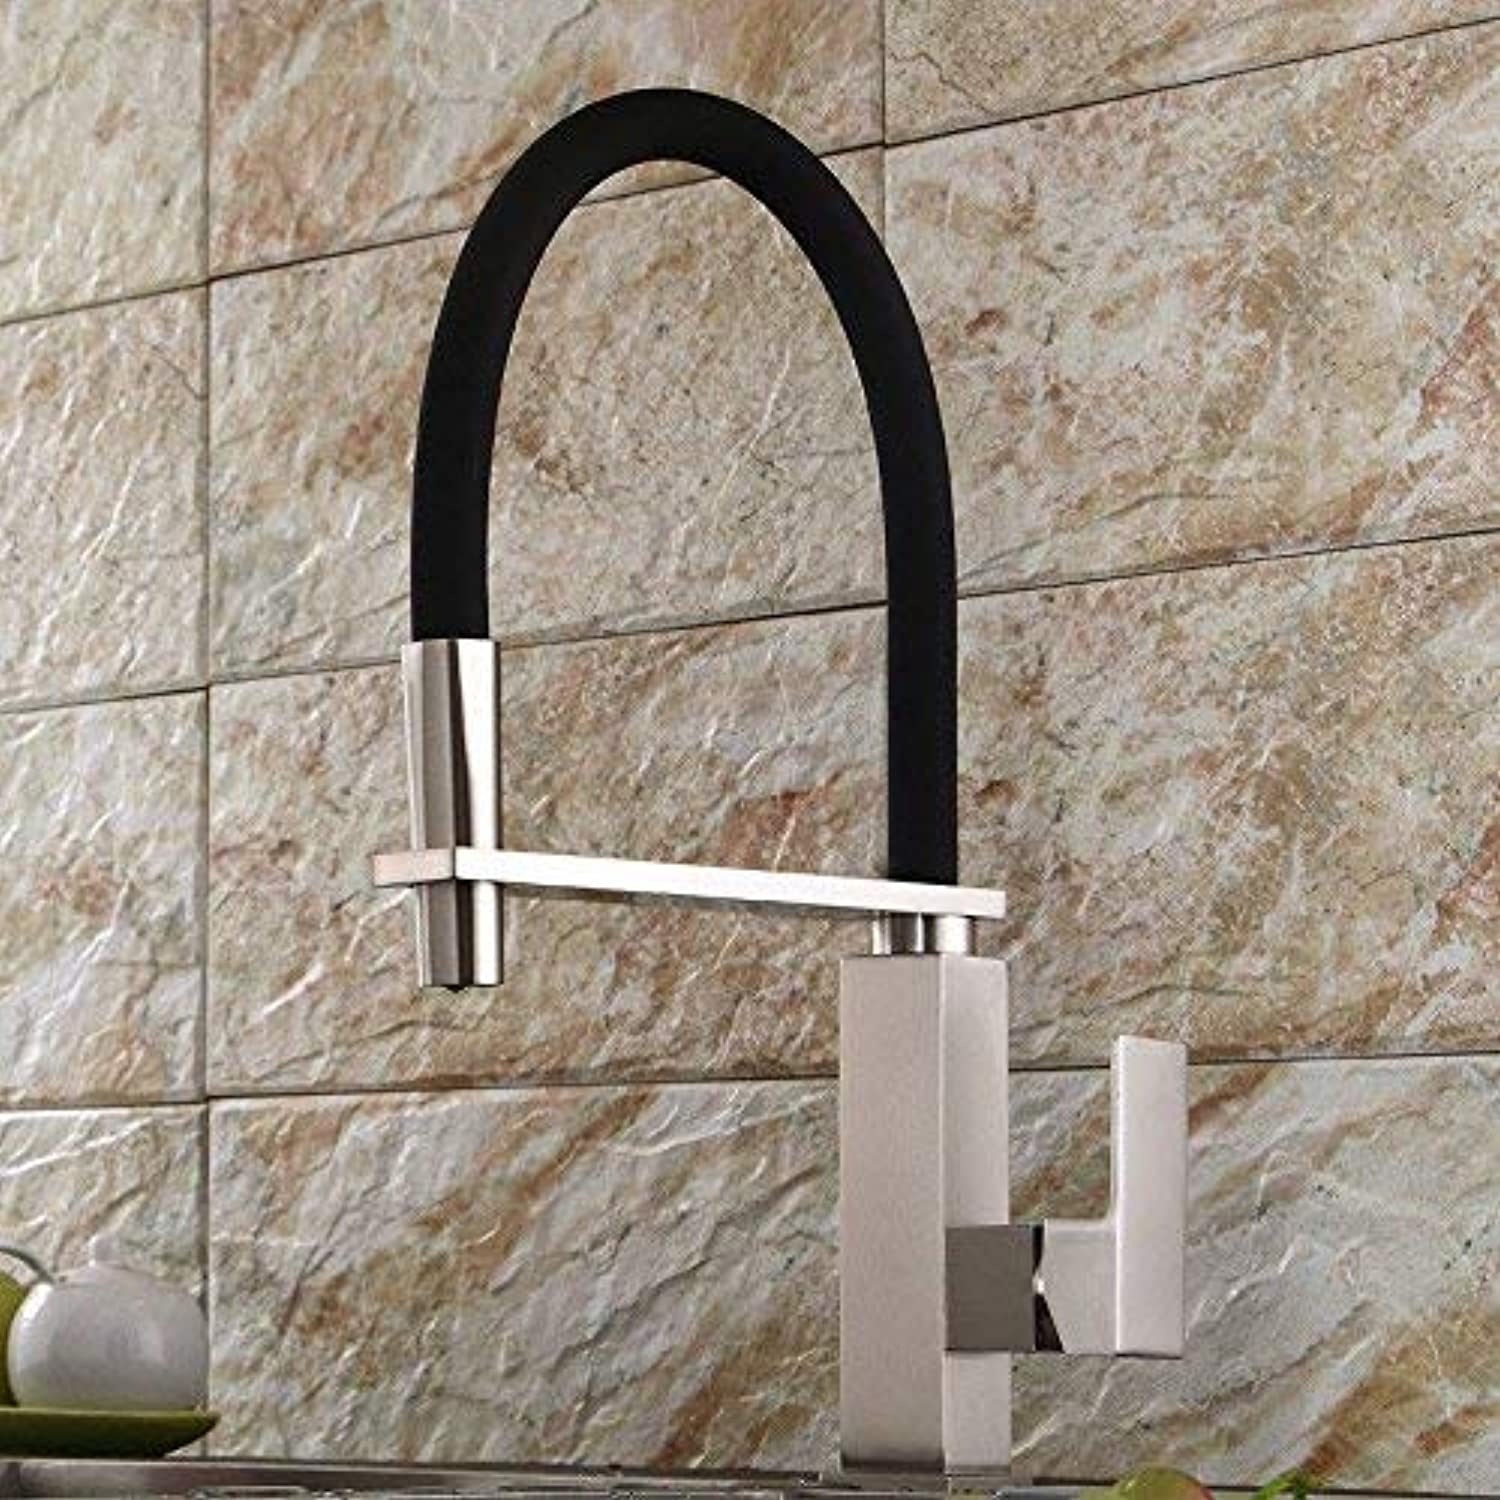 Oudan Bathroom Sink Basin Tap Brass Mixer Tap Washroom Mixer Faucet The copper kitchen faucet hot and cold redary spring turn the faucet brushed Kitchen Sink Ta